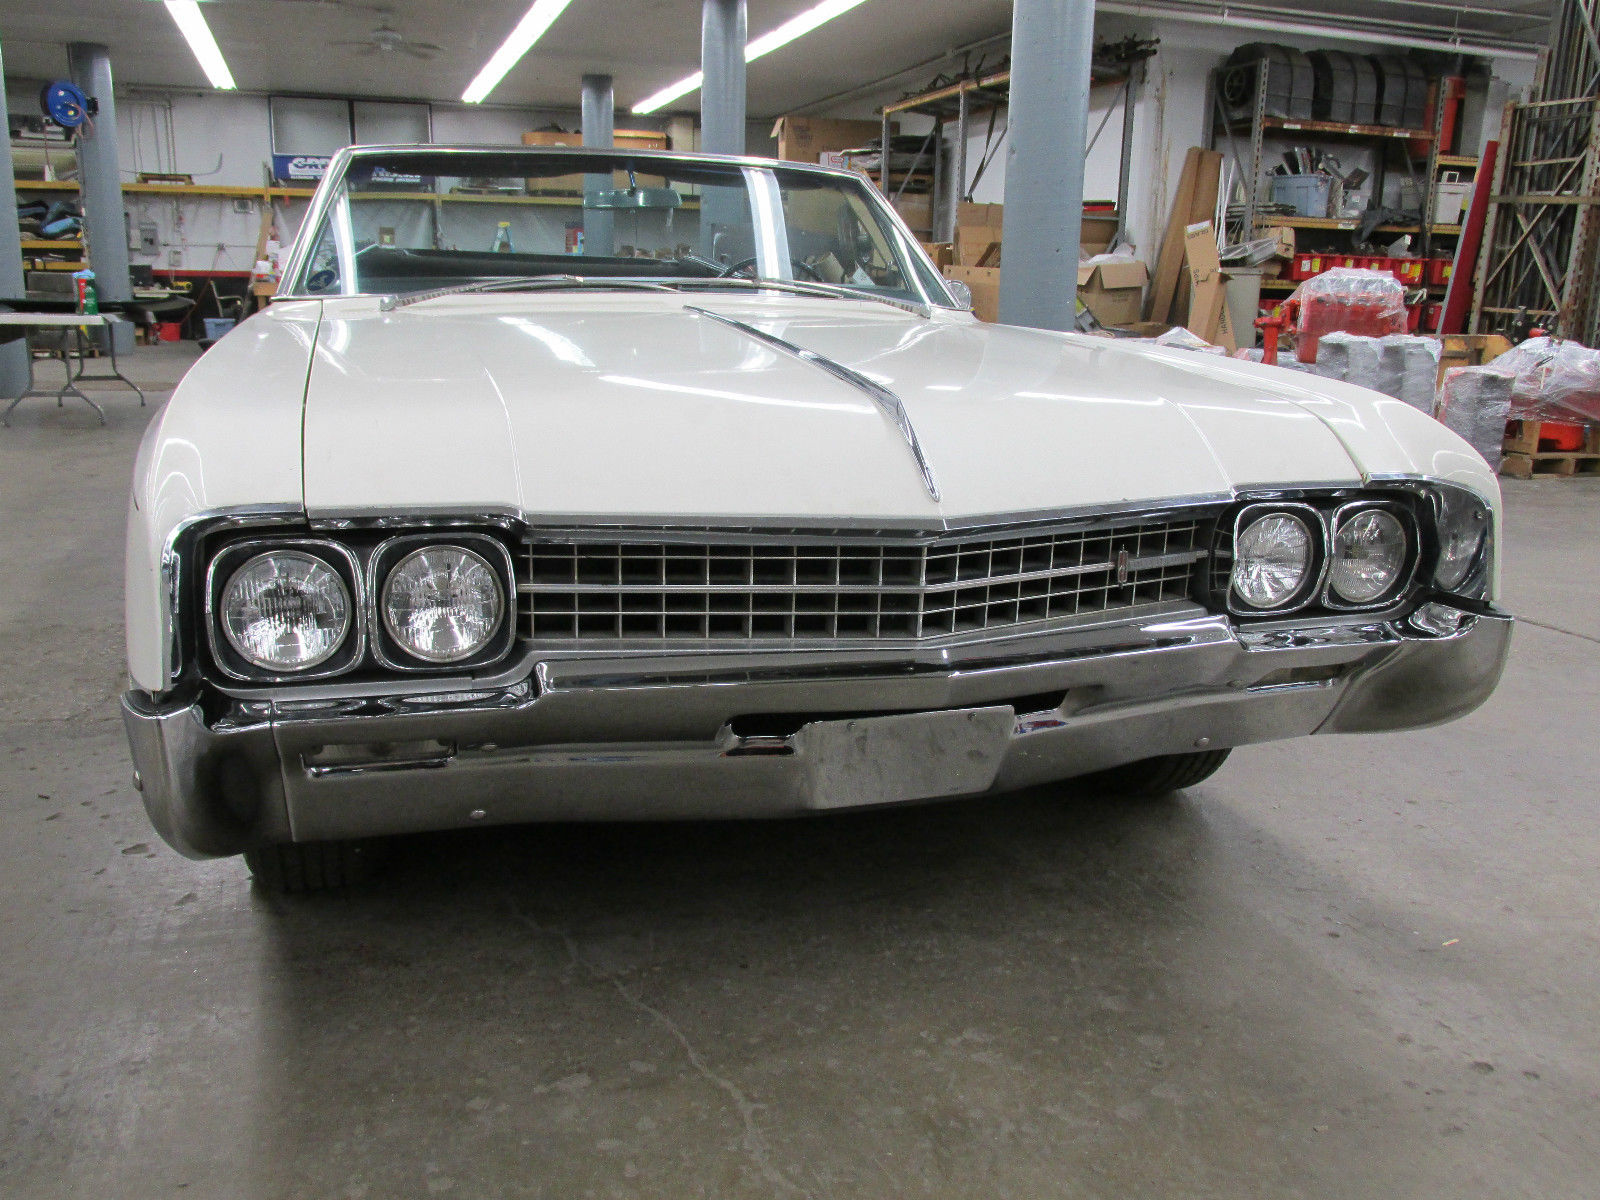 Oldsmobile Ninety Eight Convertible Olds Super Rocket Loaded on 1966 Olds Ninety Eight